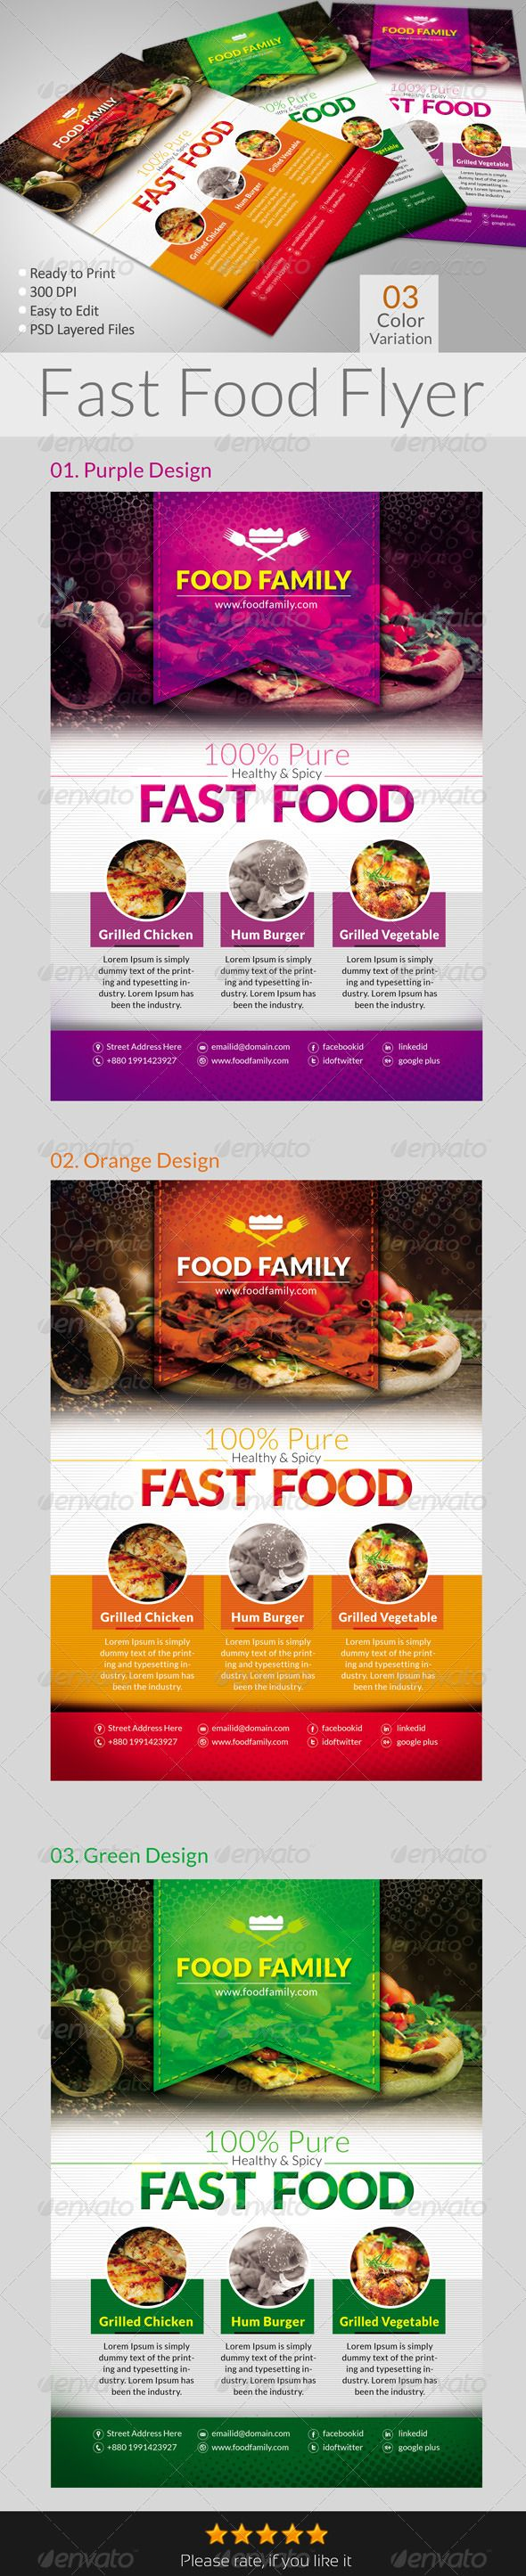 Fast Food Flyers - Restaurant Flyers